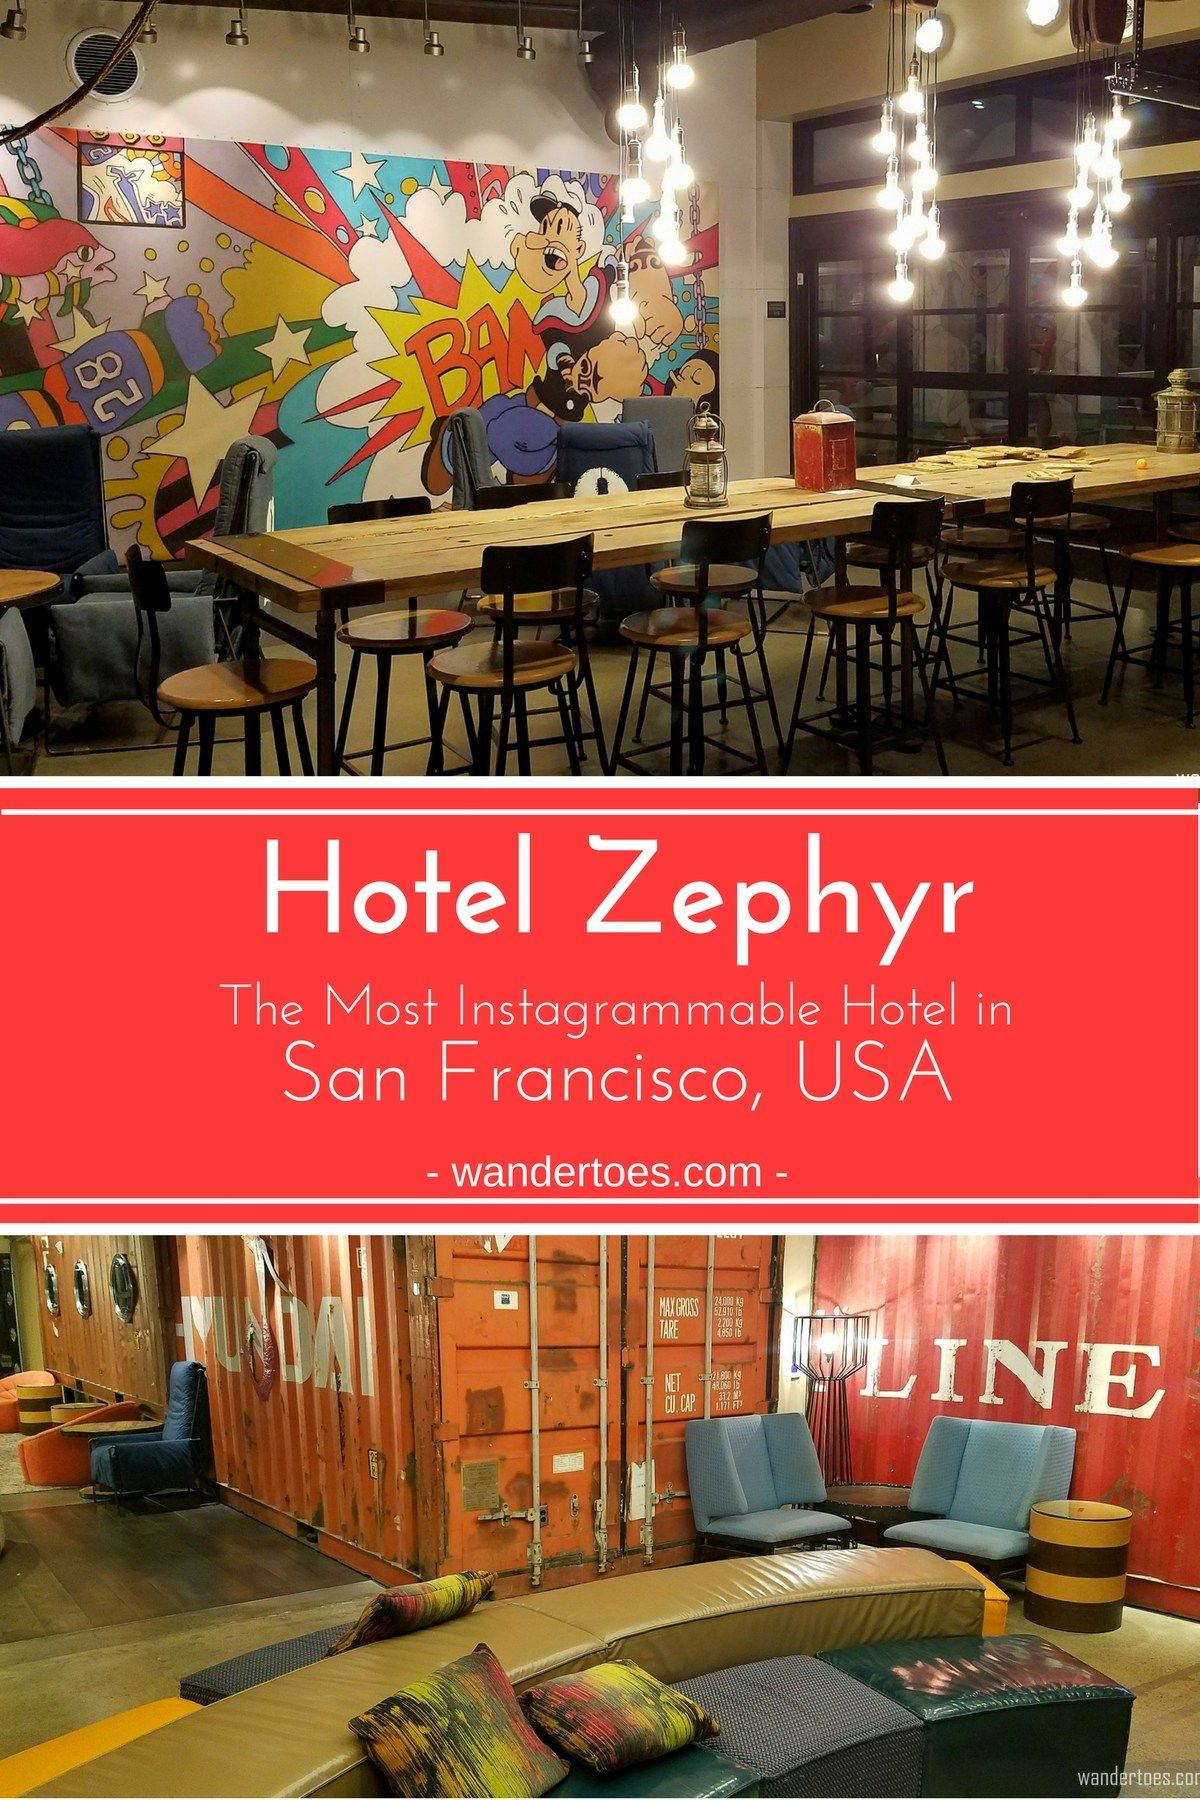 Hotel Zephyr San Francisco Review With Images North America